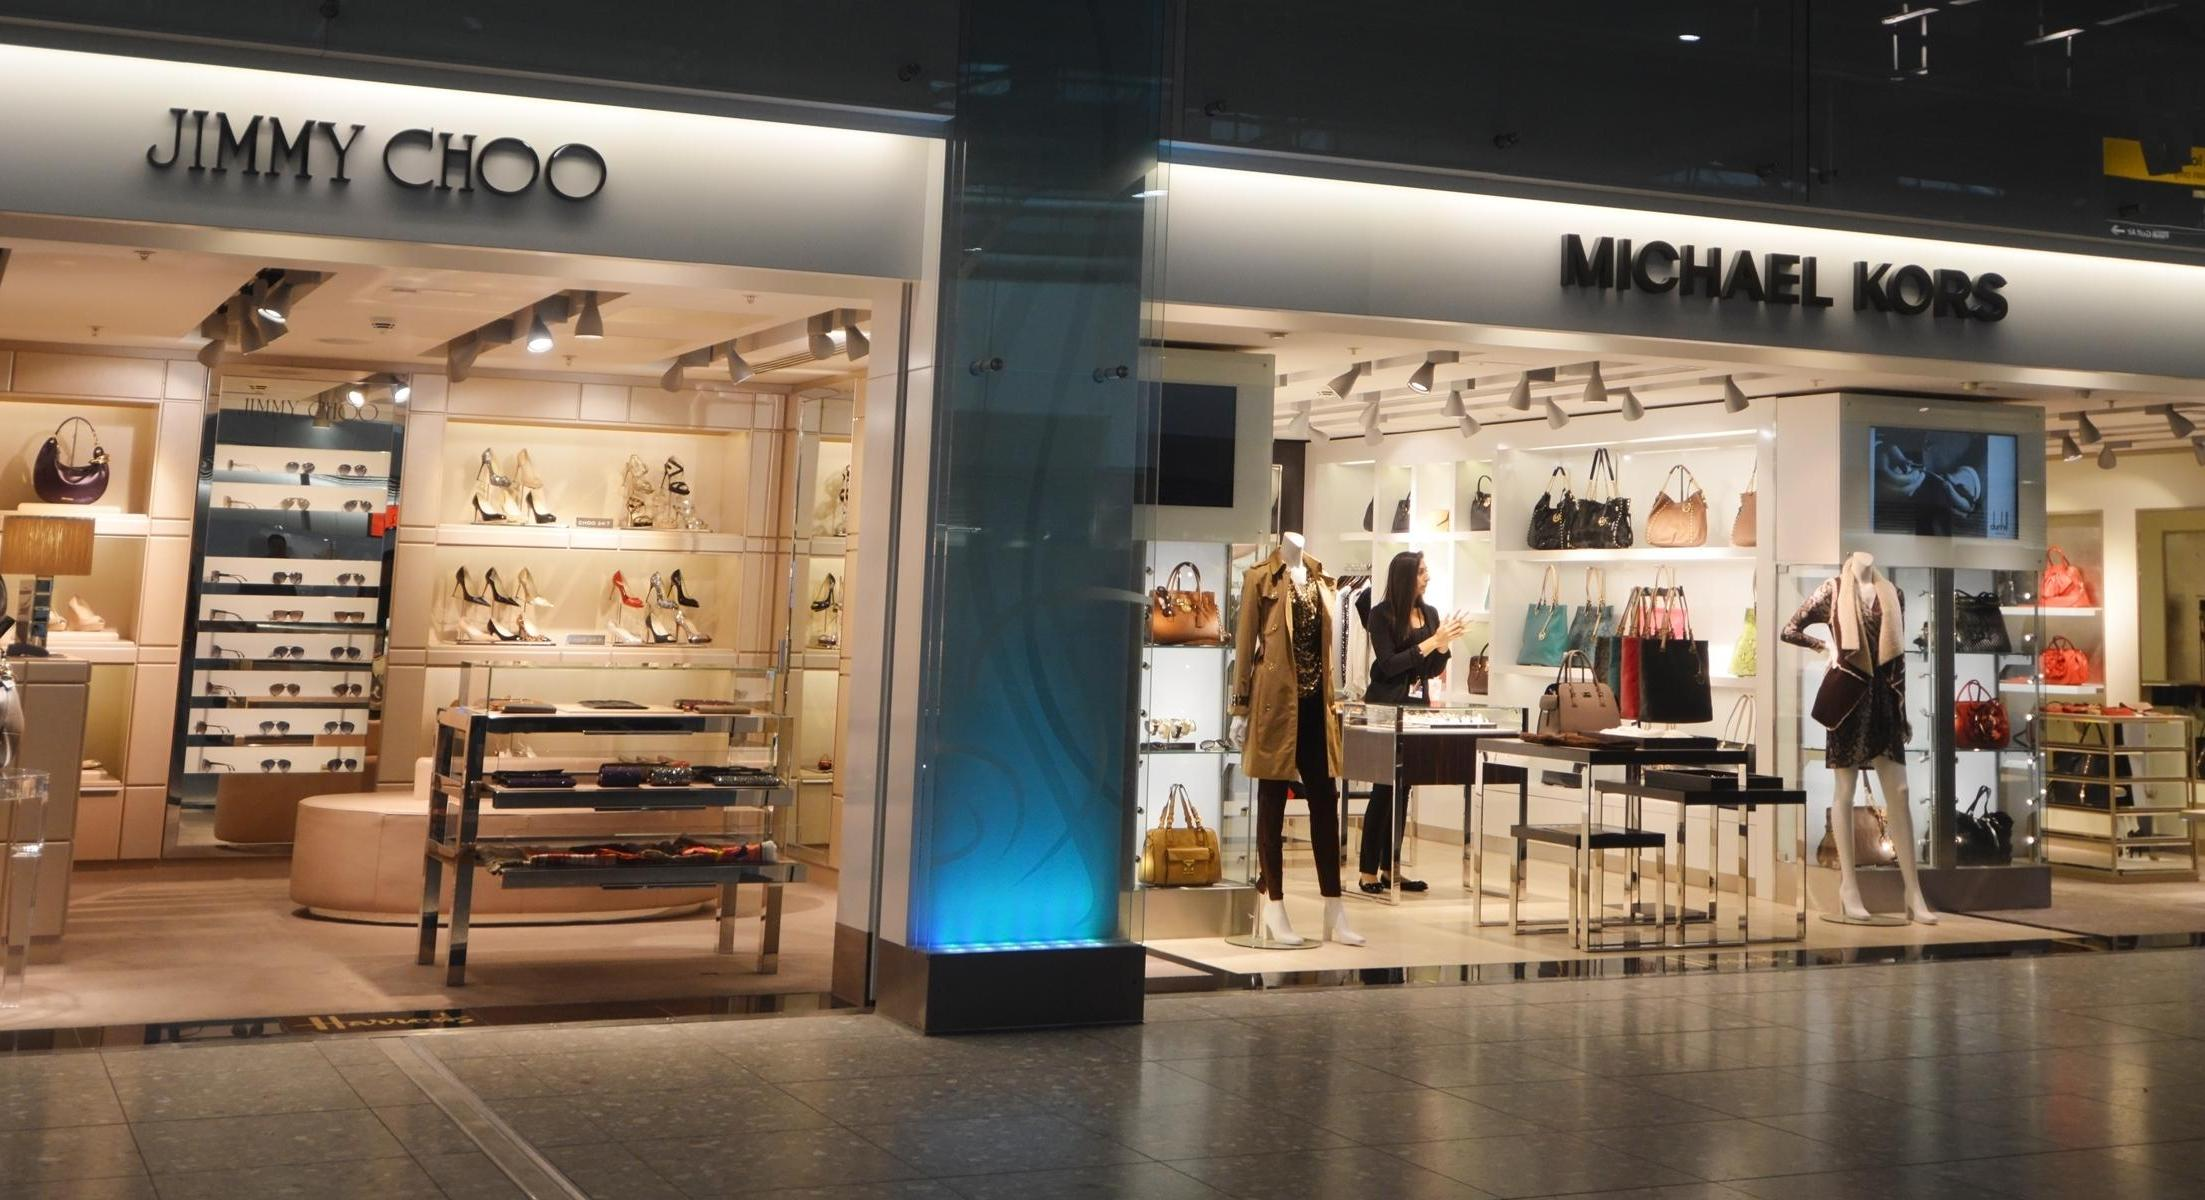 There's no question that Jimmy Choo has been a hot acquisition target since its inception in The brand's blockbuster deal with Michael Kors, valued at $ billion, will mark the fifth.